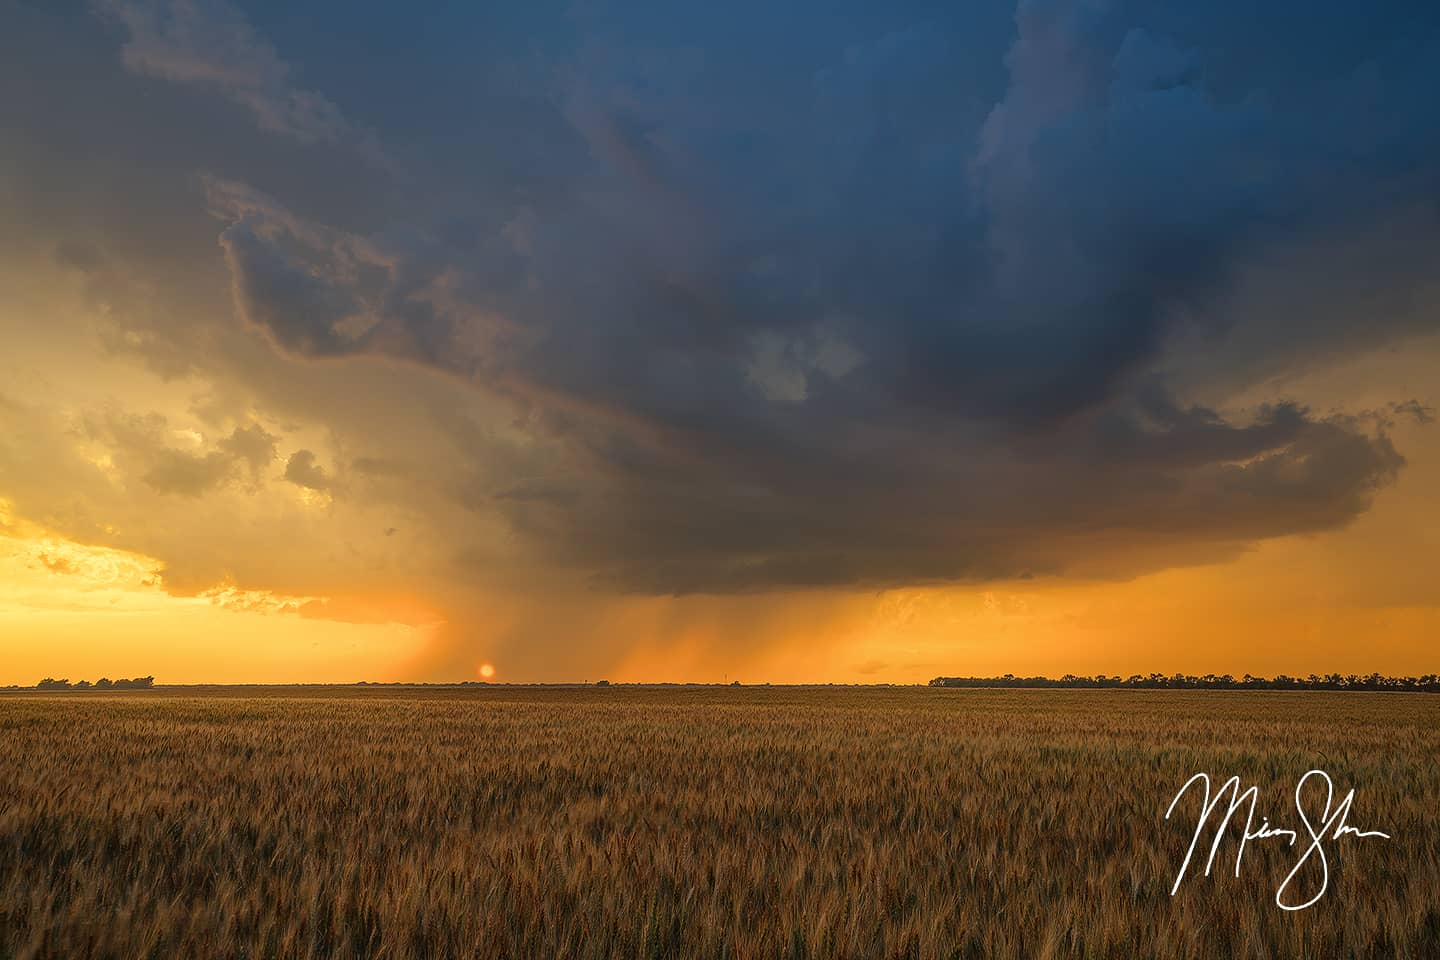 Open edition fine art print of Fire and Rain from Mickey Shannon Photography. Location: Wichita, Kansas